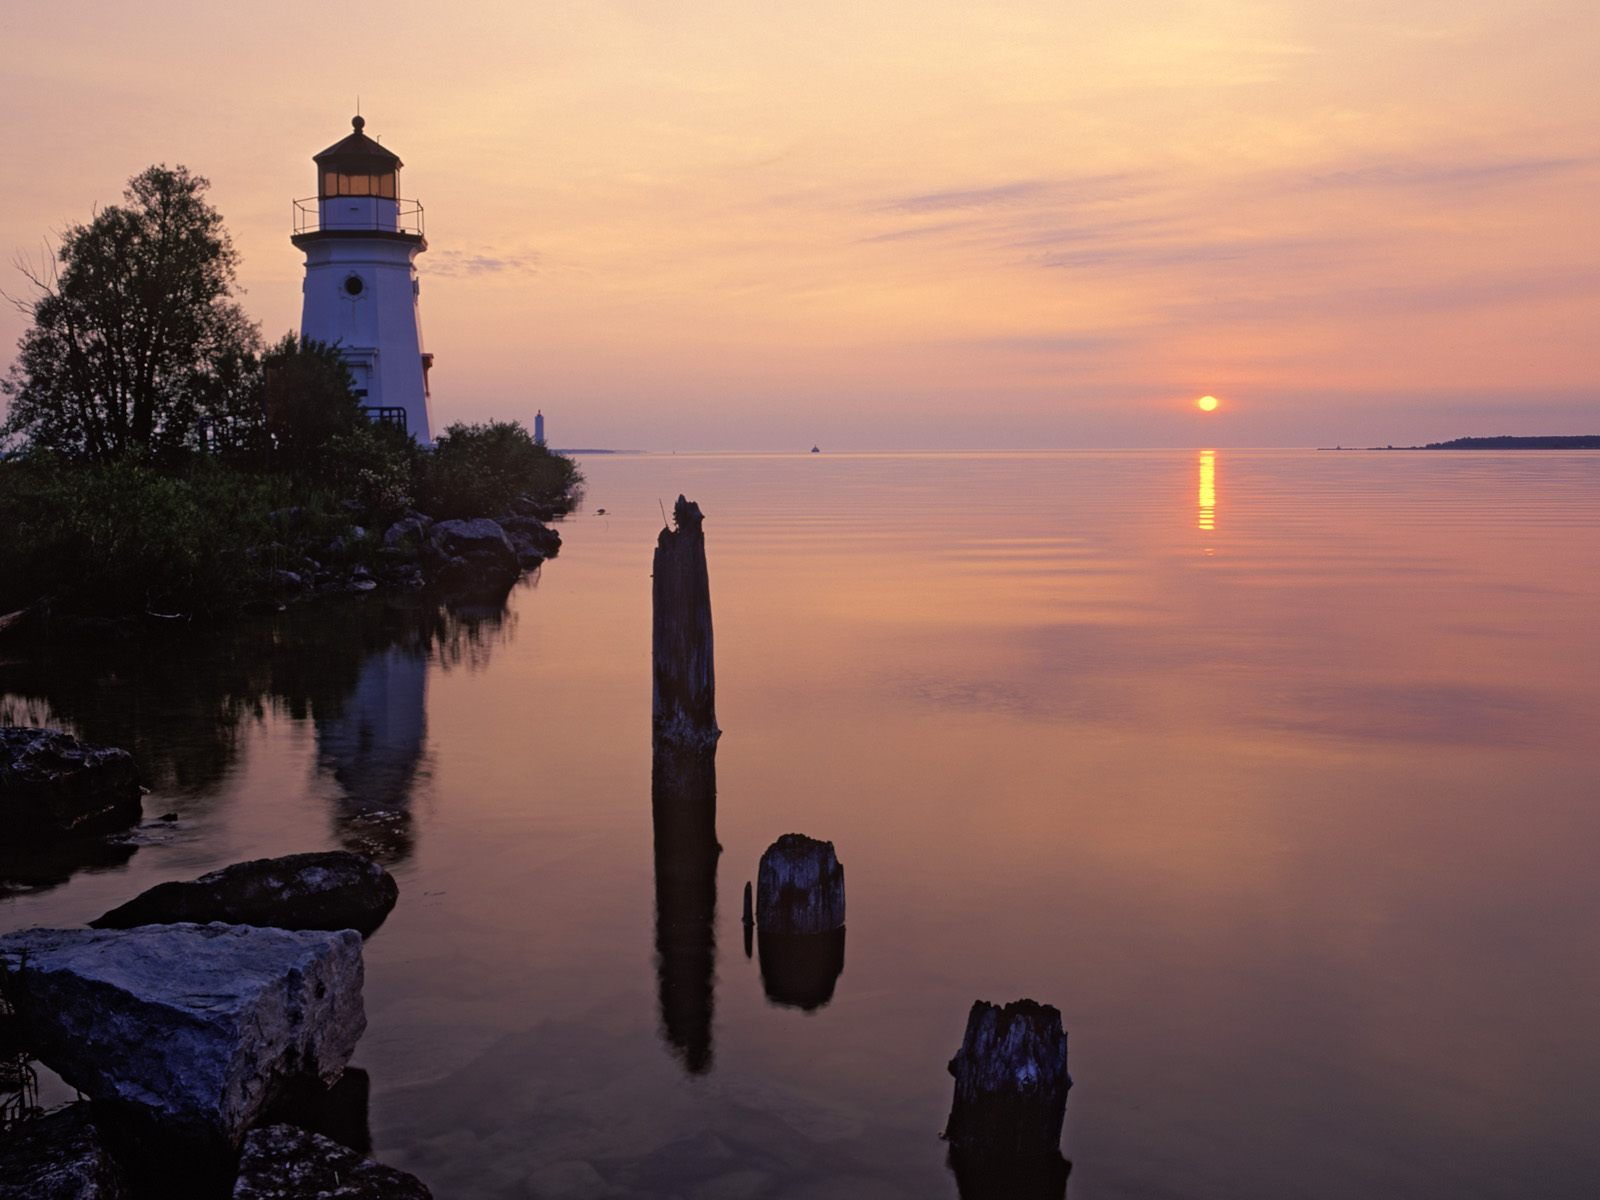 Cheboygan Range Light Silhouetted at Sunrise Cheboygan Michigan